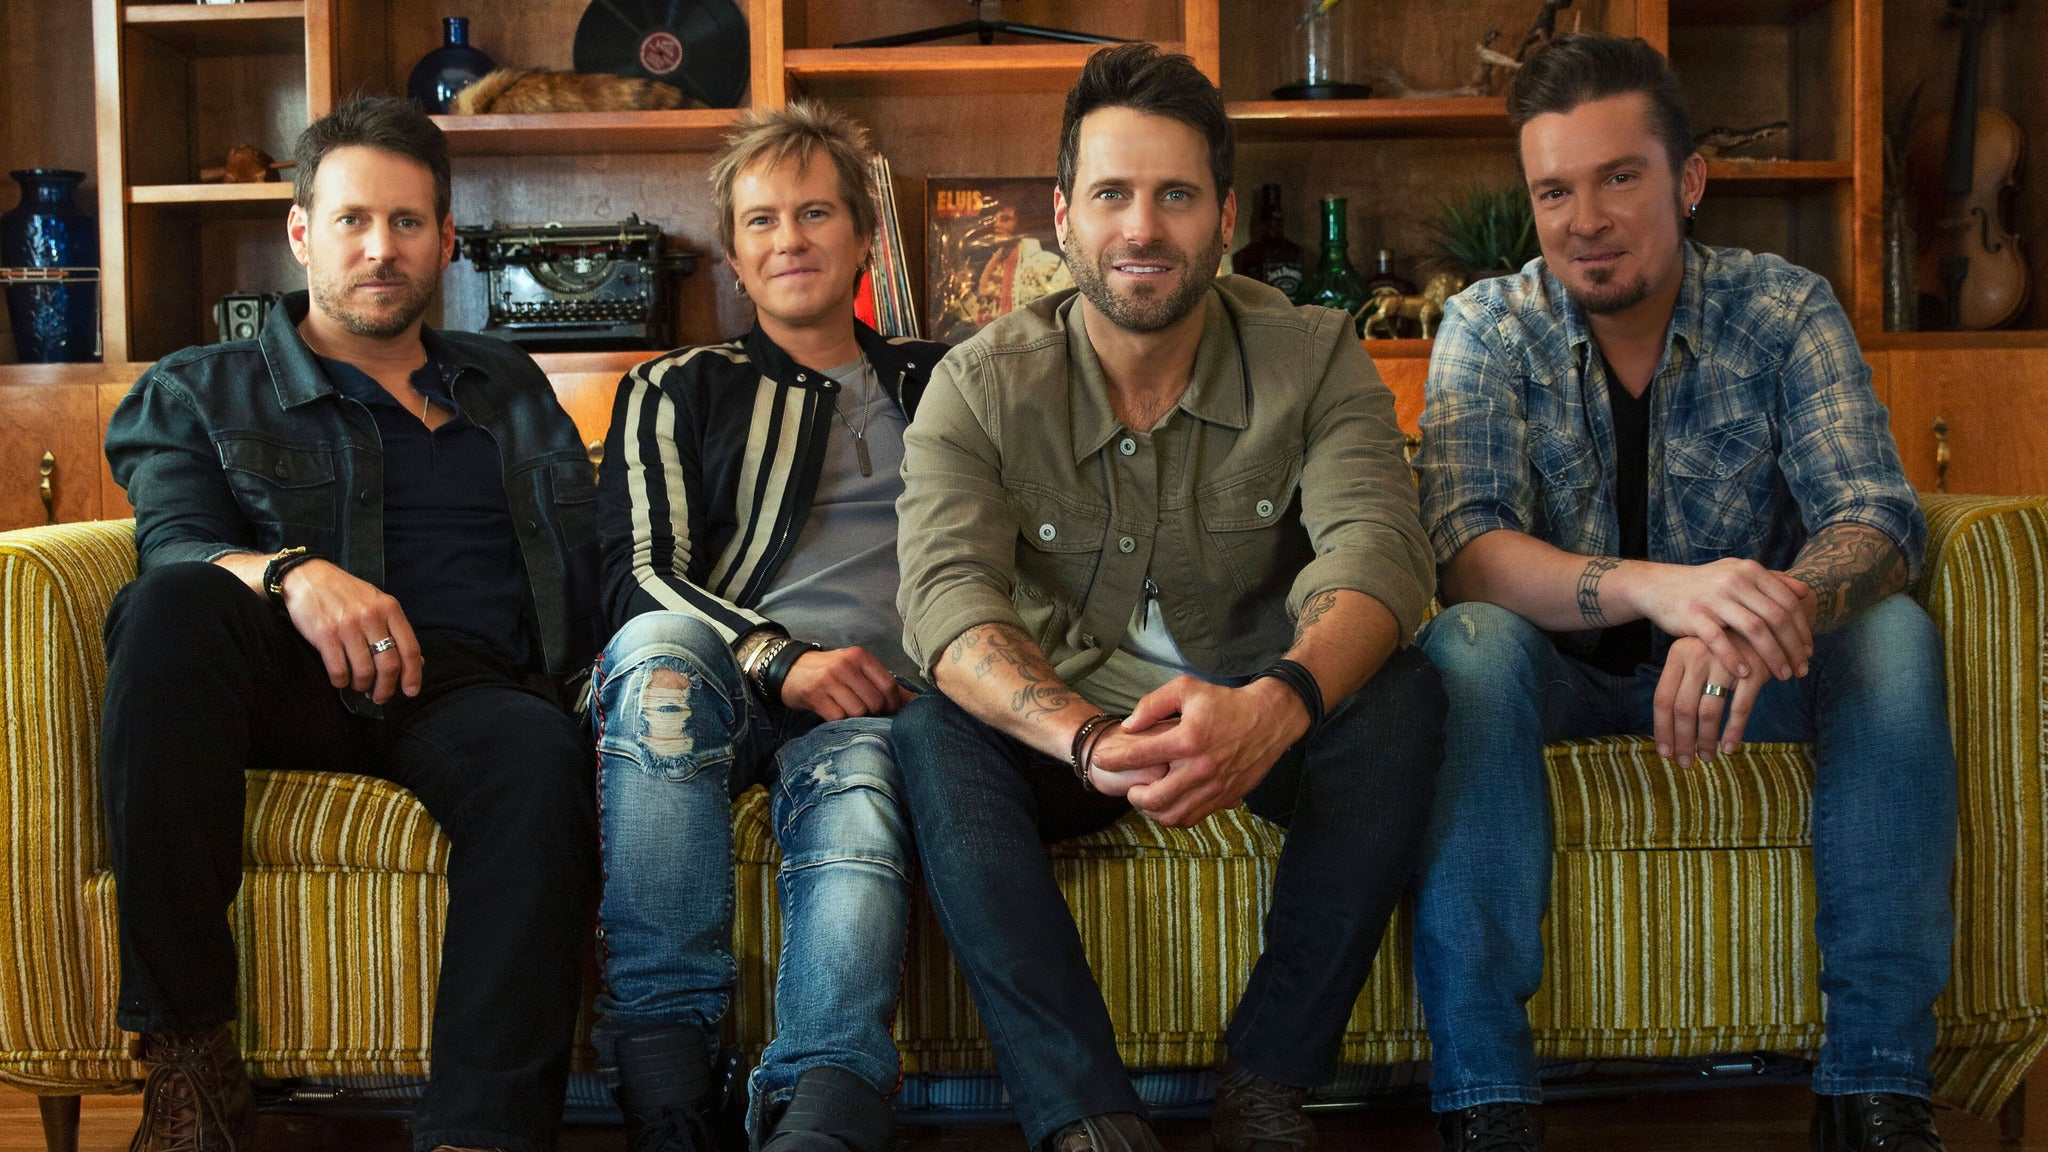 Parmalee, Meet and Greet Early Enrty Soundcheck Party Ticket